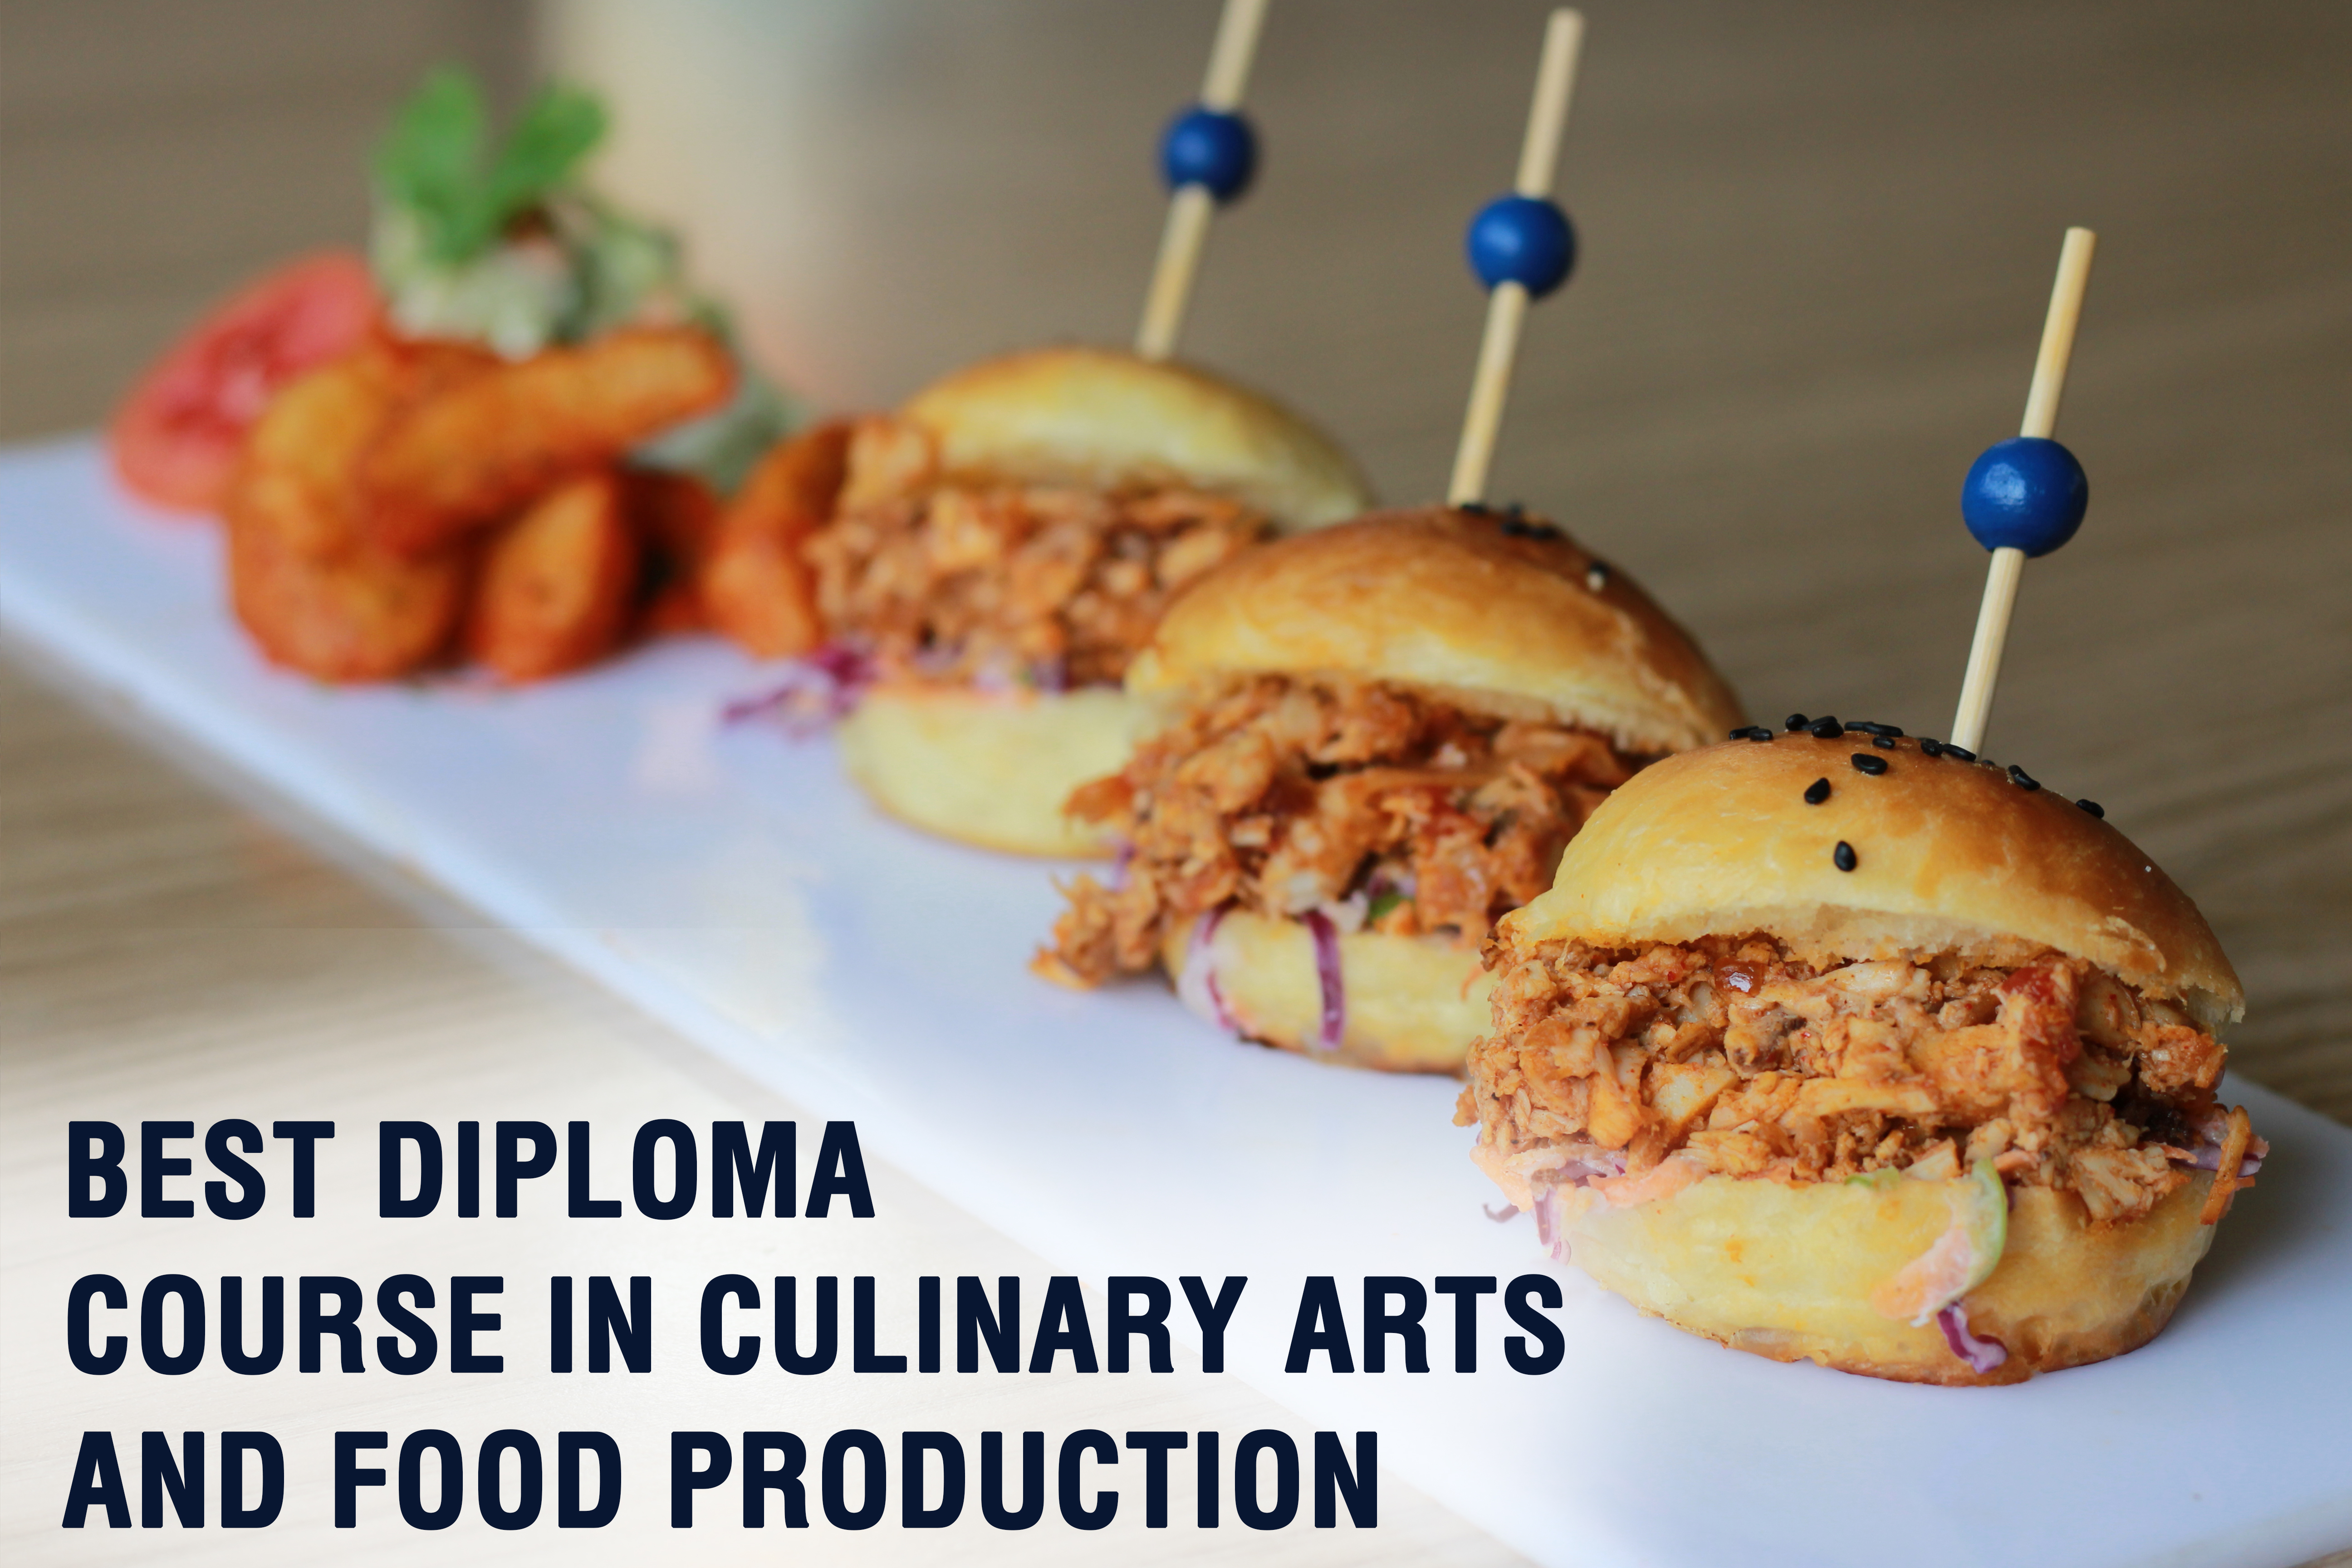 Best Diploma Course In Culinary Arts And Food Production